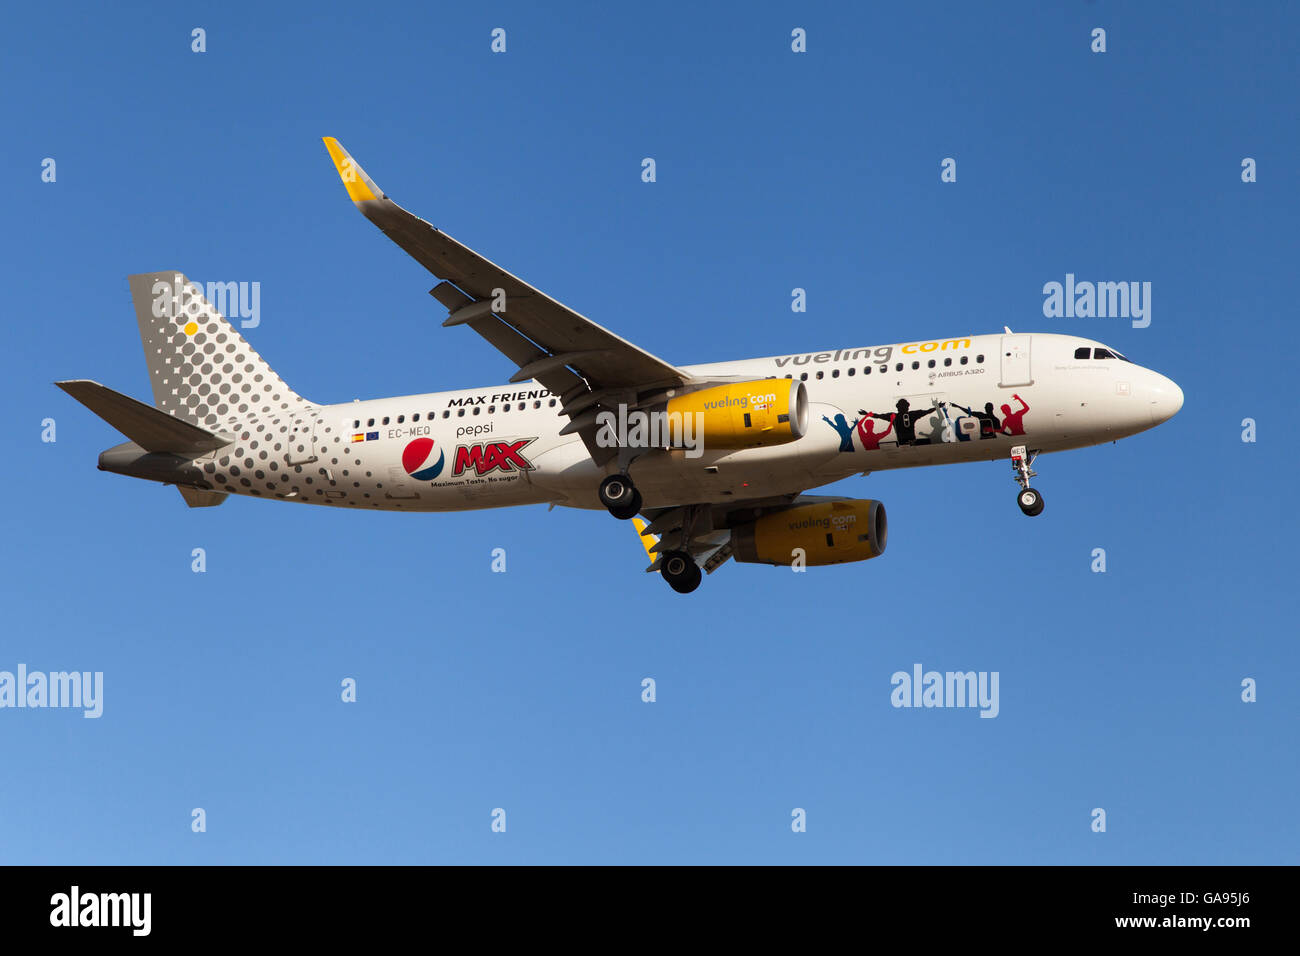 A Vueling Airbus A320-200 wearing Pepsi Max special livery approaching to El Prat Airport in Barcelona, Spain. - Stock Image